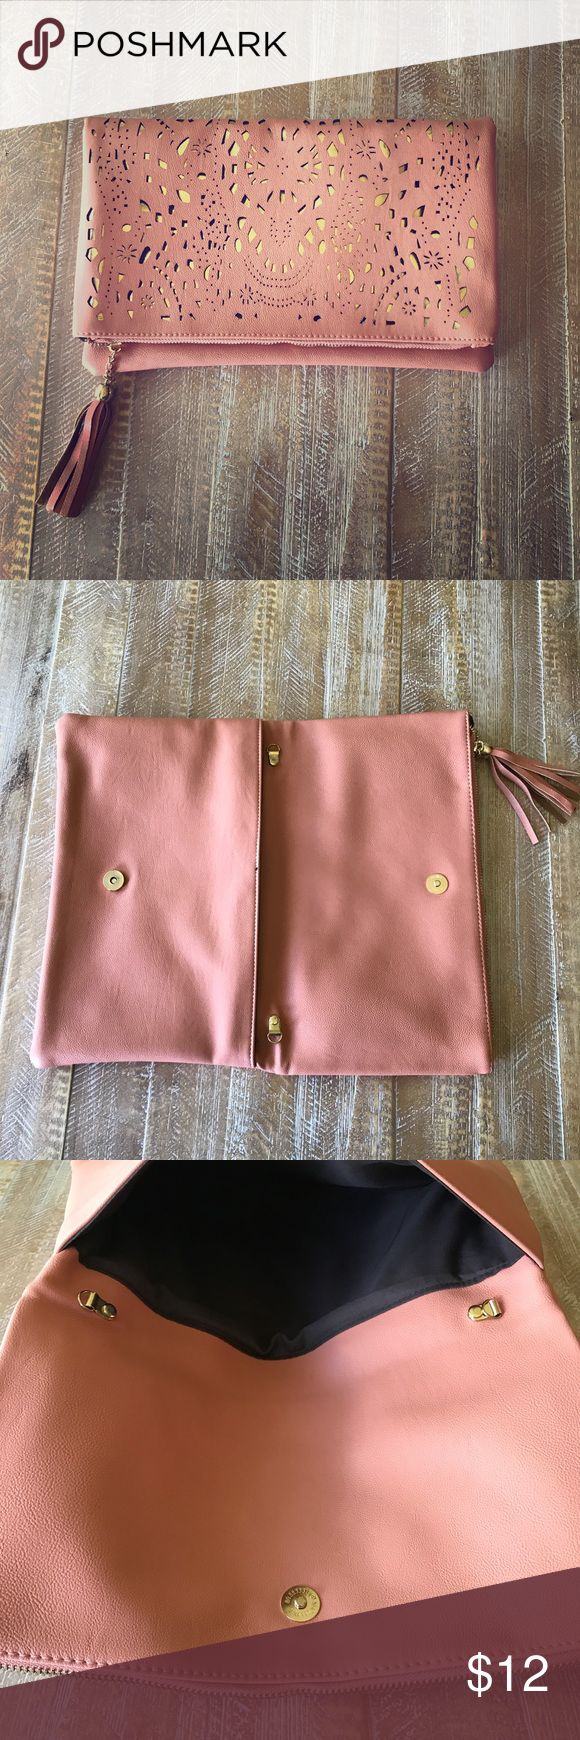 Blush and gold clutch Large blush with cold detail clutch. This bag is in perfect condition- never worn! It has an optional gold chain that could be worn over shoulder or cross body. Perfect bag for going out. This bag is faux leather. Bag is 12 in wide and 8 in tall. Bags Clutches & Wristlets